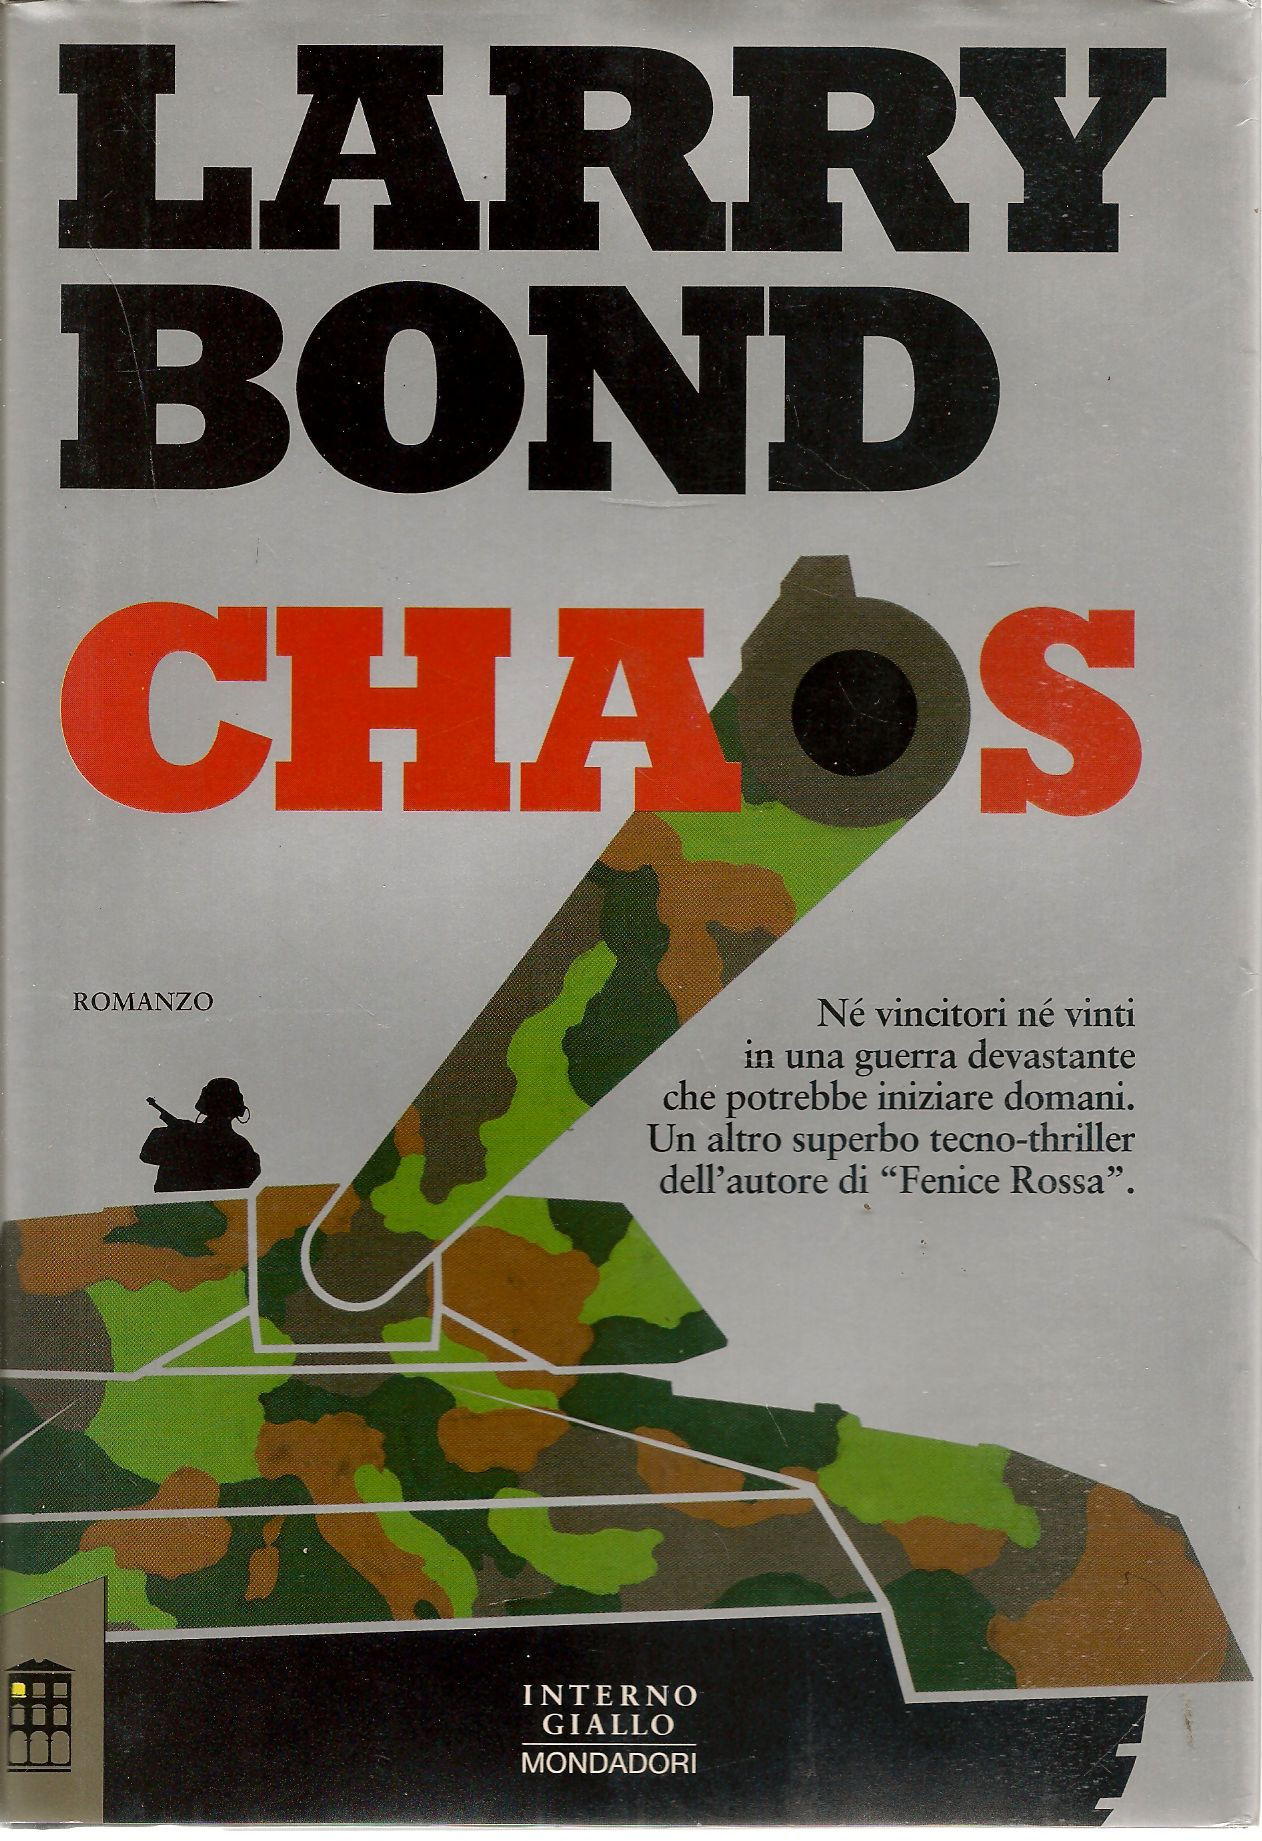 CHAOS - LARRY BOND